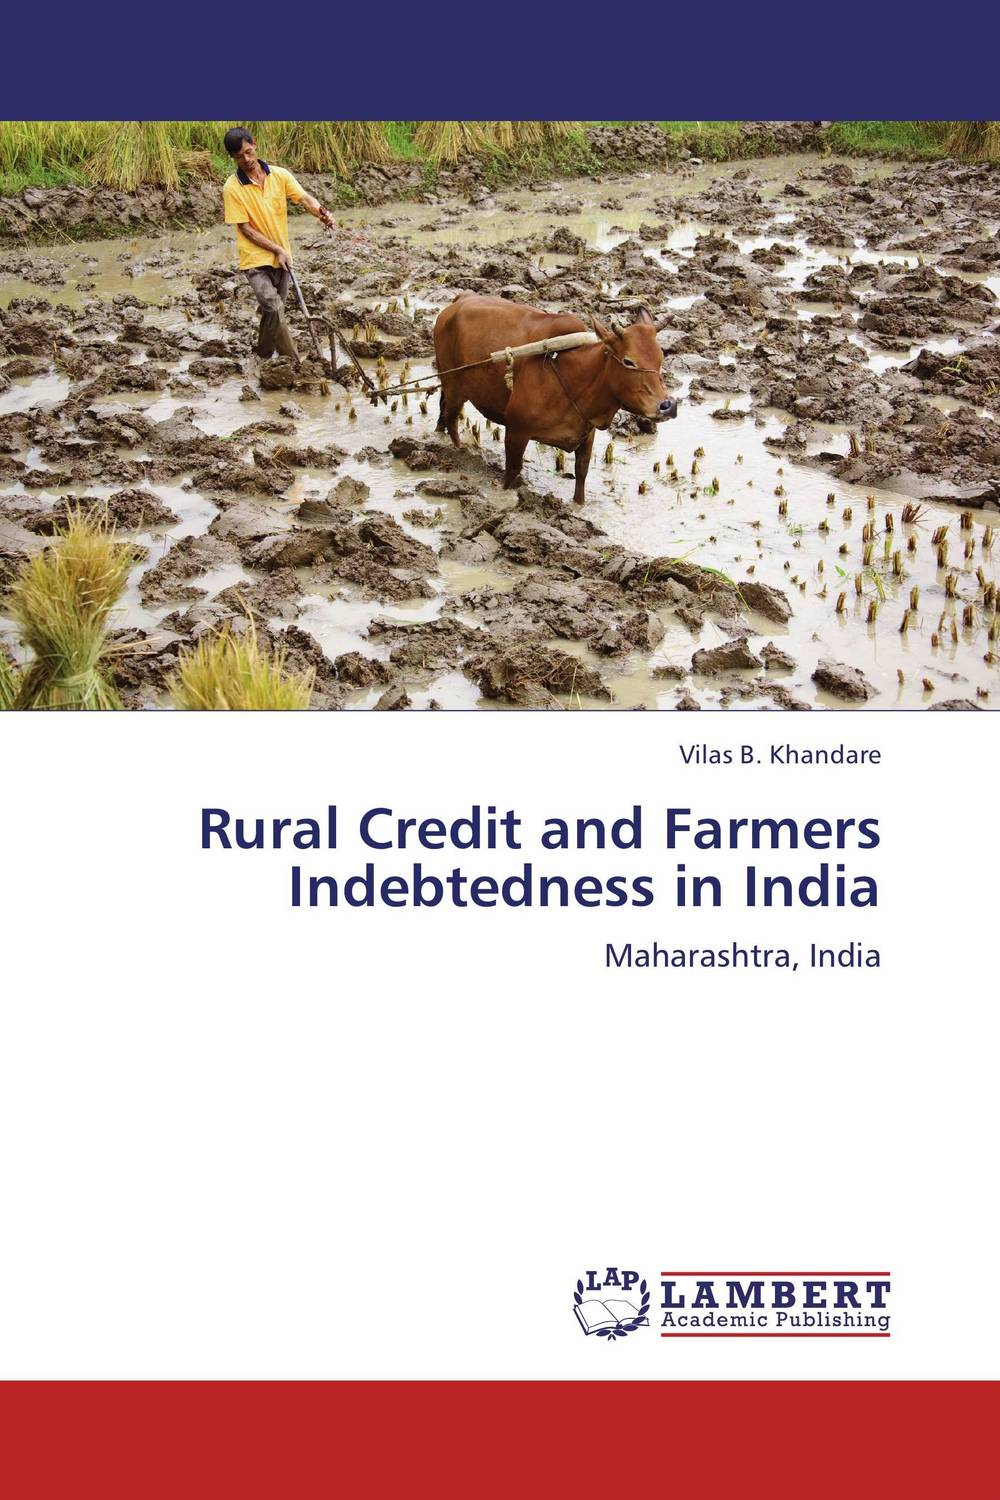 Rural Credit and Farmers Indebtedness in India women as work force in rural india